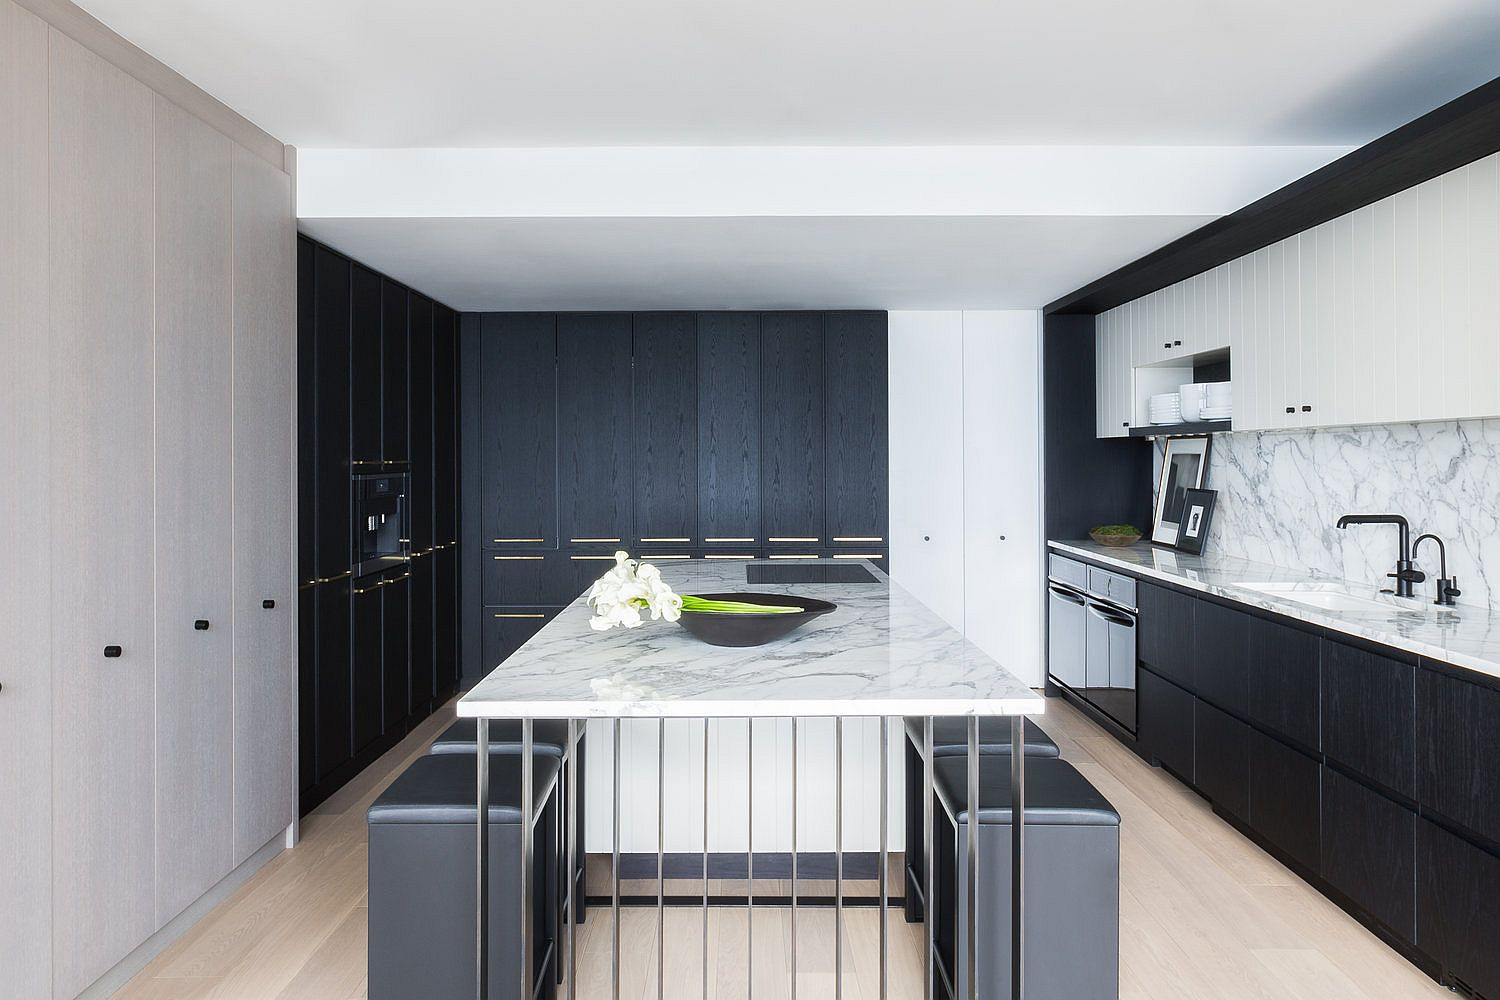 Dark cabinets and marble countertops fashion a kitchen that is elegant and exclusive